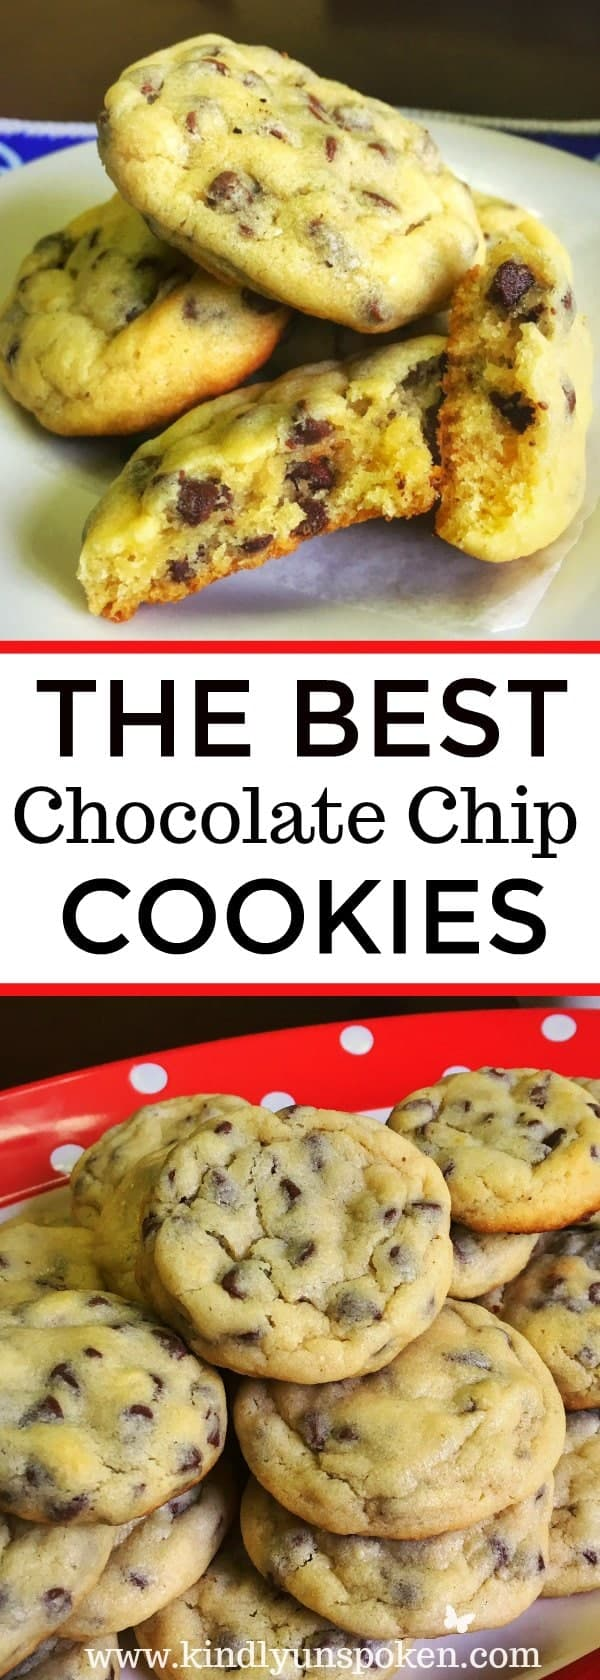 Mom's Famous Chocolate Chip Cookies- Searching for the best chocolate chip cookie recipe? Look no further and give my Mom's Famous Chocolate Chip Cookies a try! These homemade cookies are soft, gooey, and really are the best ever cookies around. Even better they're super easy to whip together and the whole family will love them!